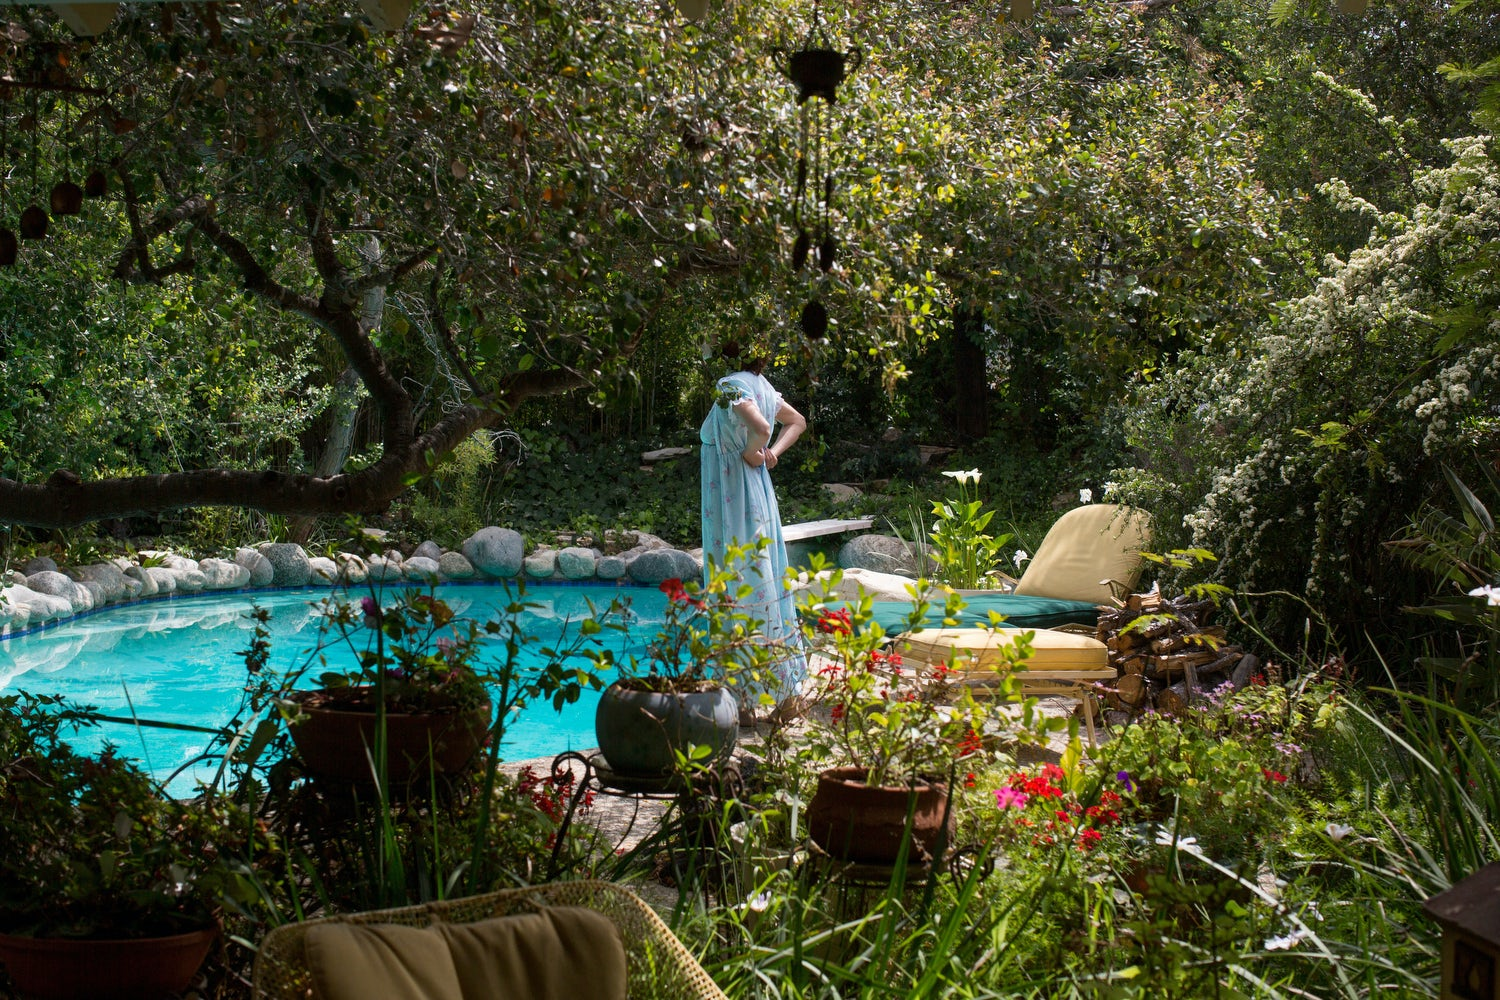 Actor playing the mother of Diana Markosian stood by a pool, her head concealed by a tree